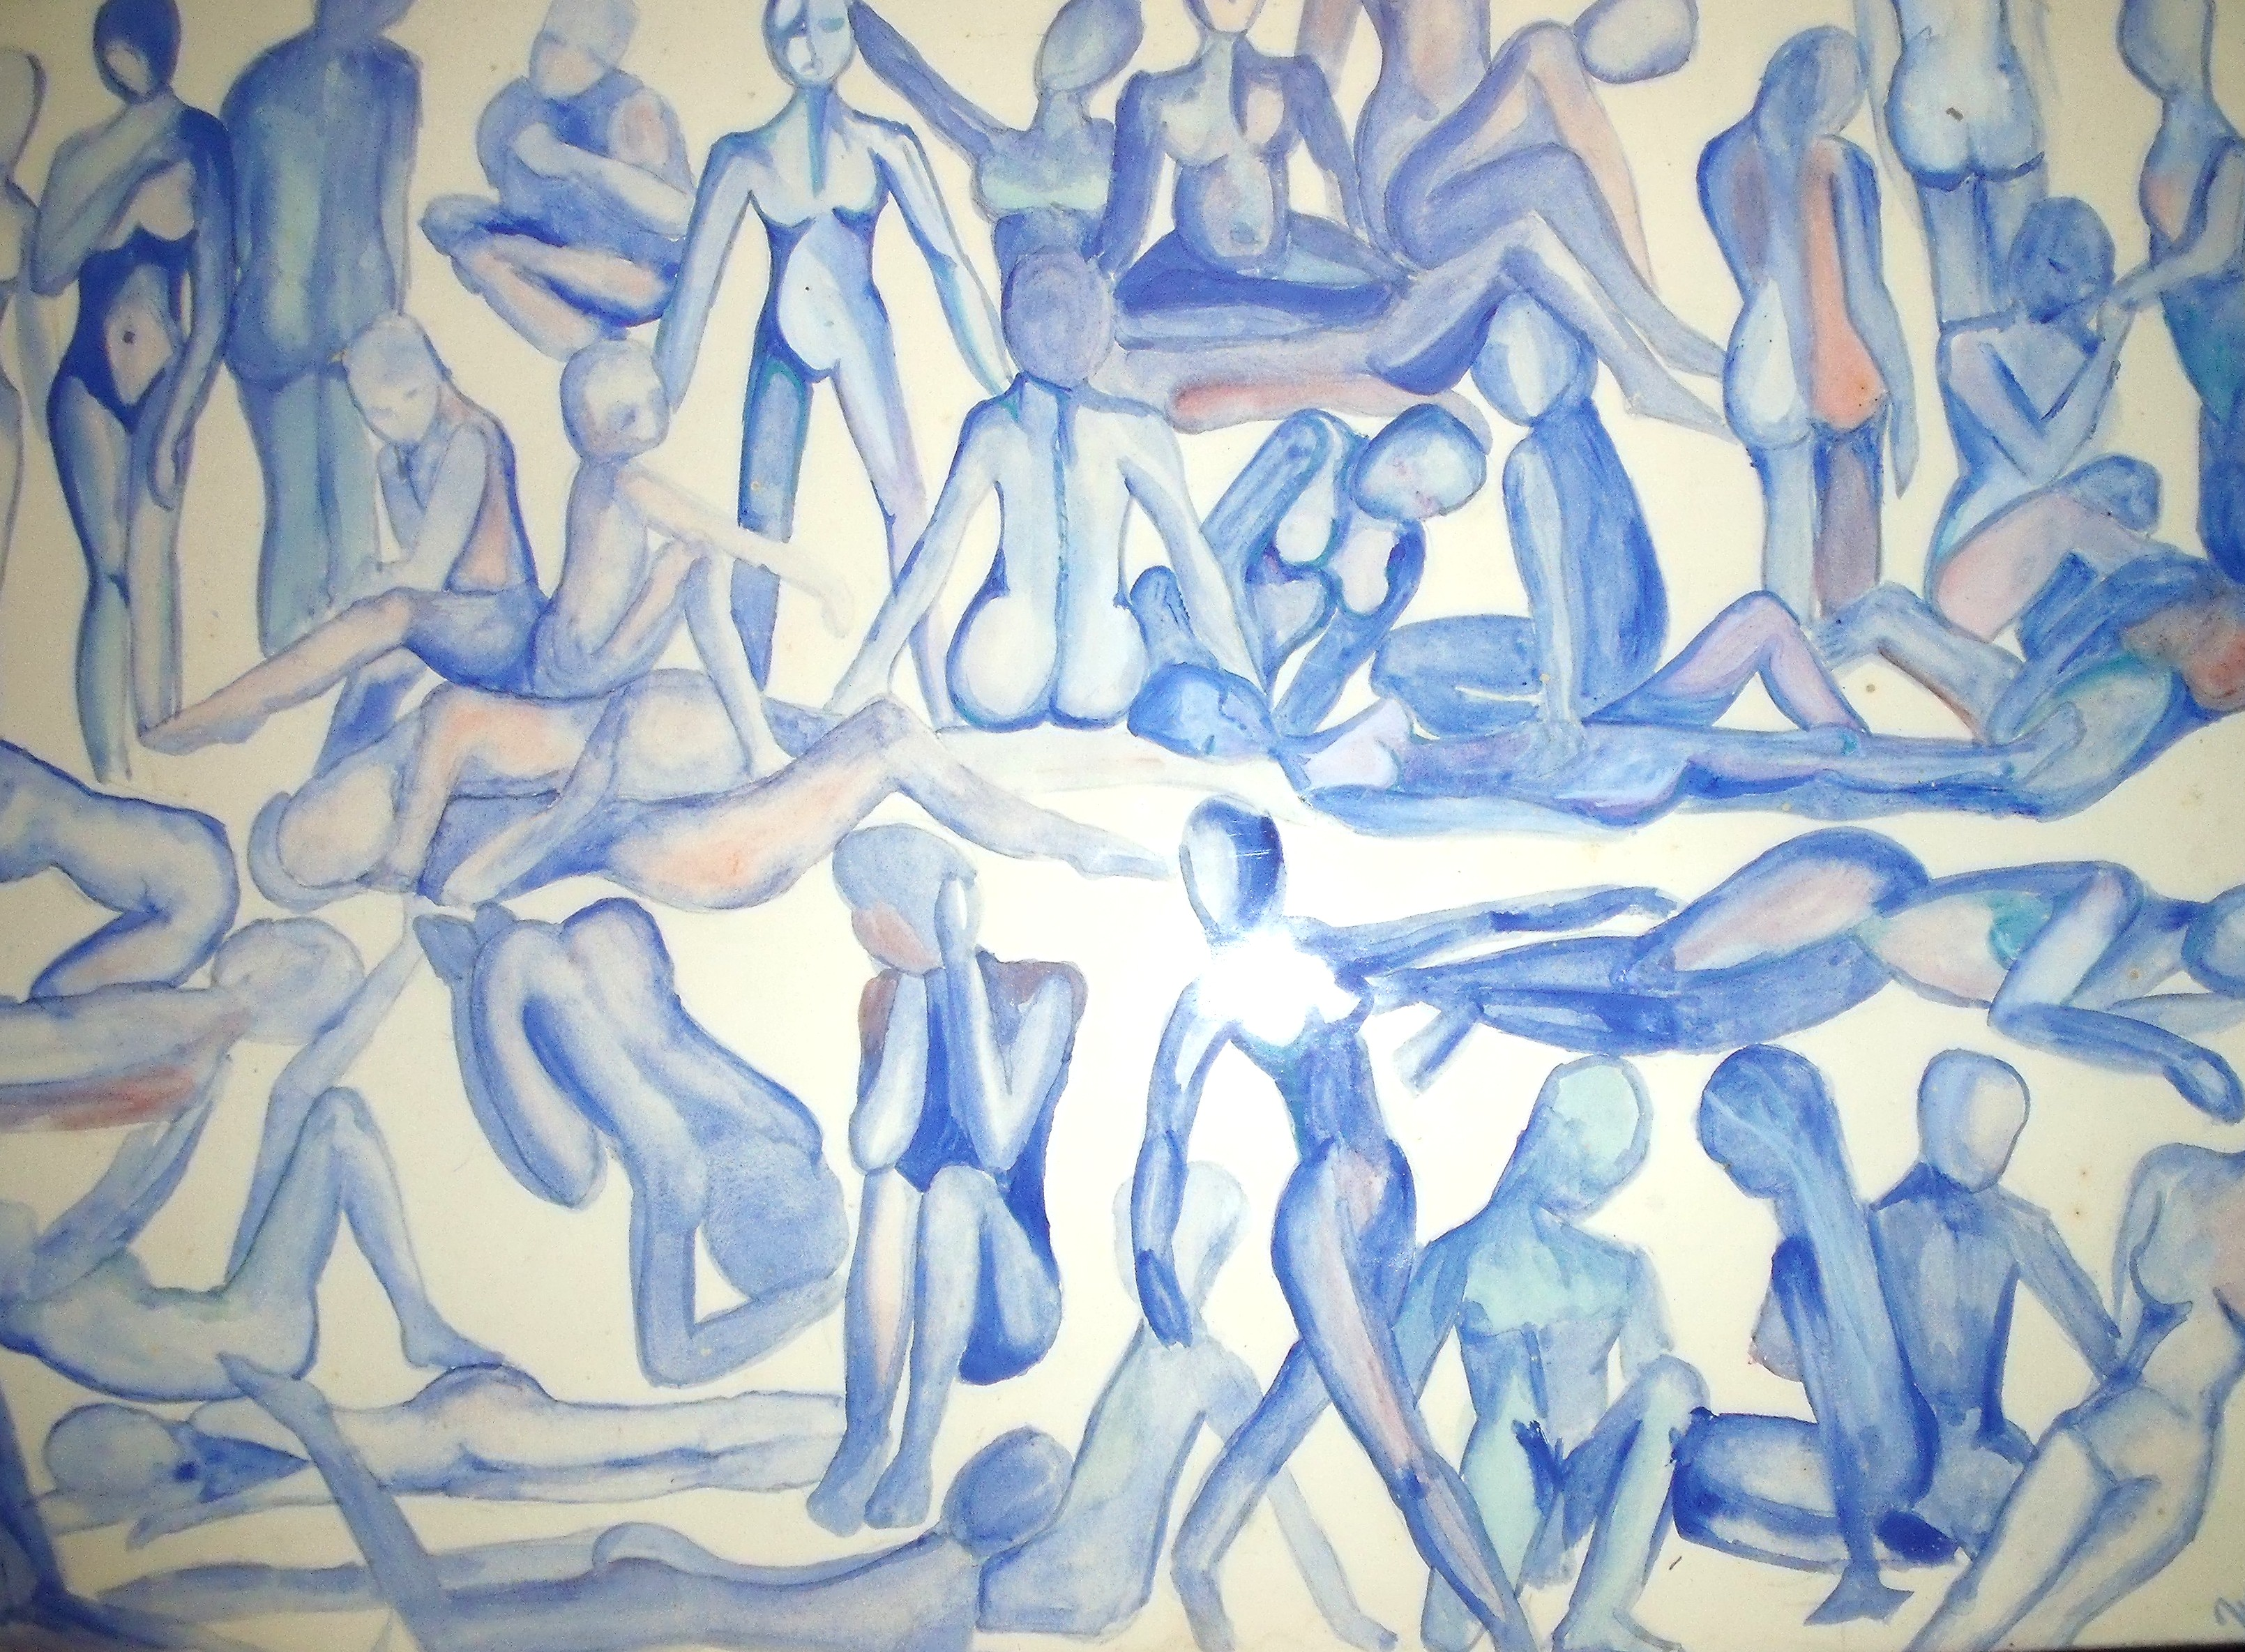 Blue nudes, one of my first paintings